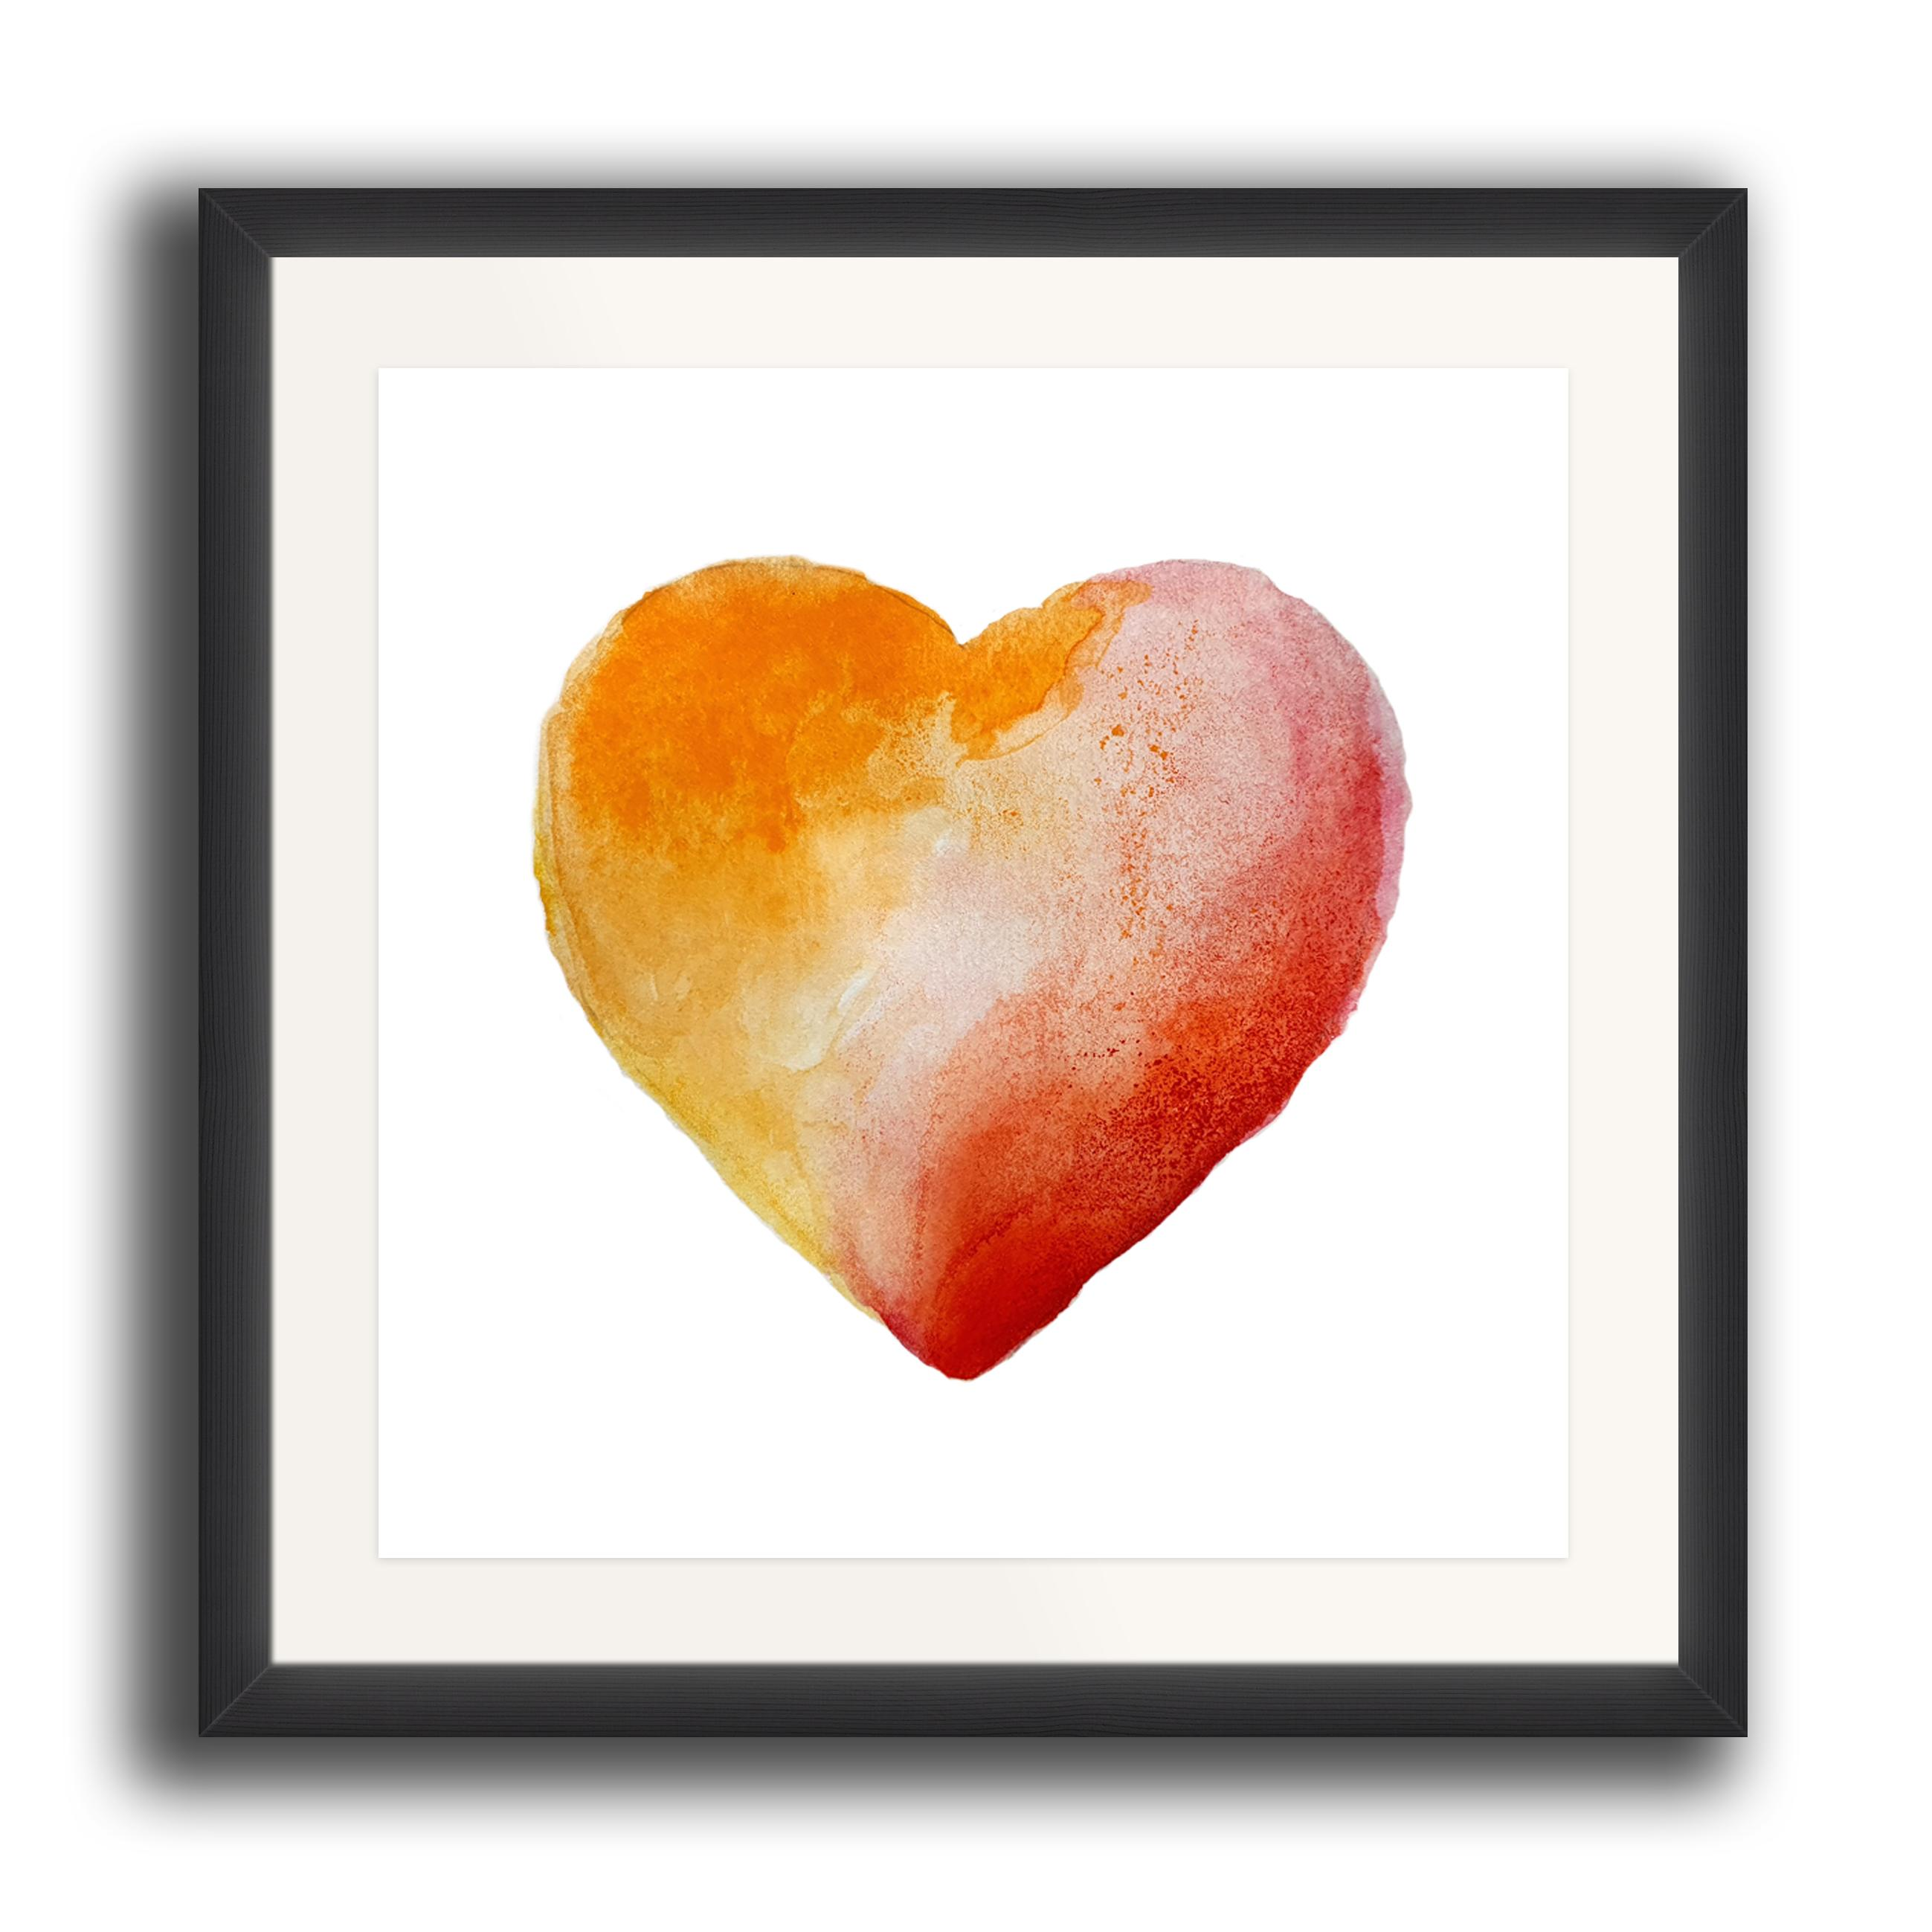 A watercolour print by Clarrie-Anne on eco fine art paper titled Warm Heart showing read and orange watercolour wash heart on a white background. The image is set in a black coloured picture frame.